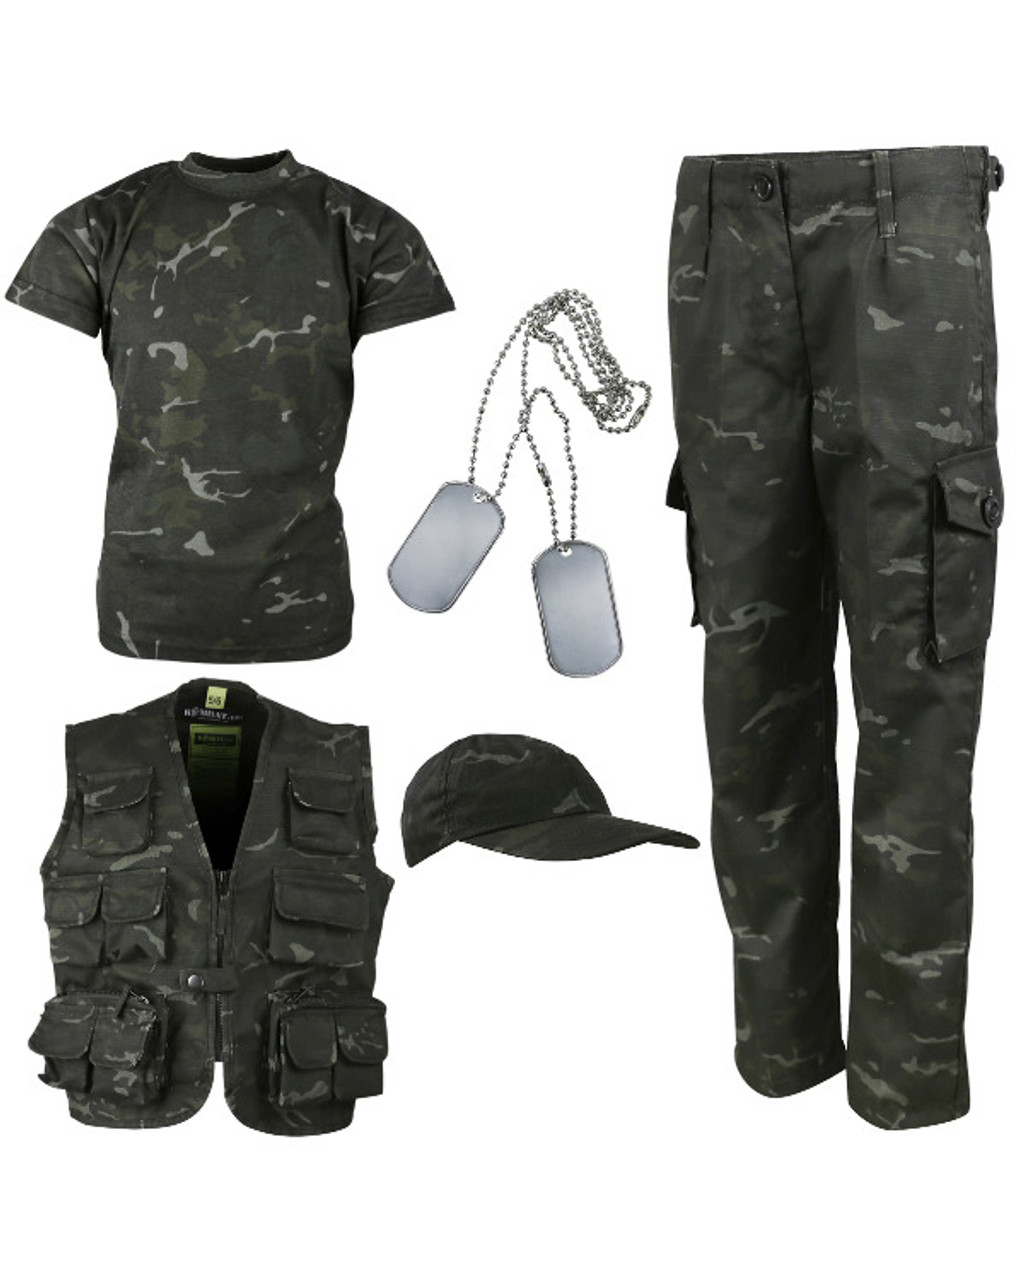 KIDS CHILDRENS MTP PCS CAMO SET T SHIRT TROUSERS HOODIE SOLDIER 95 BRITISH ARMY